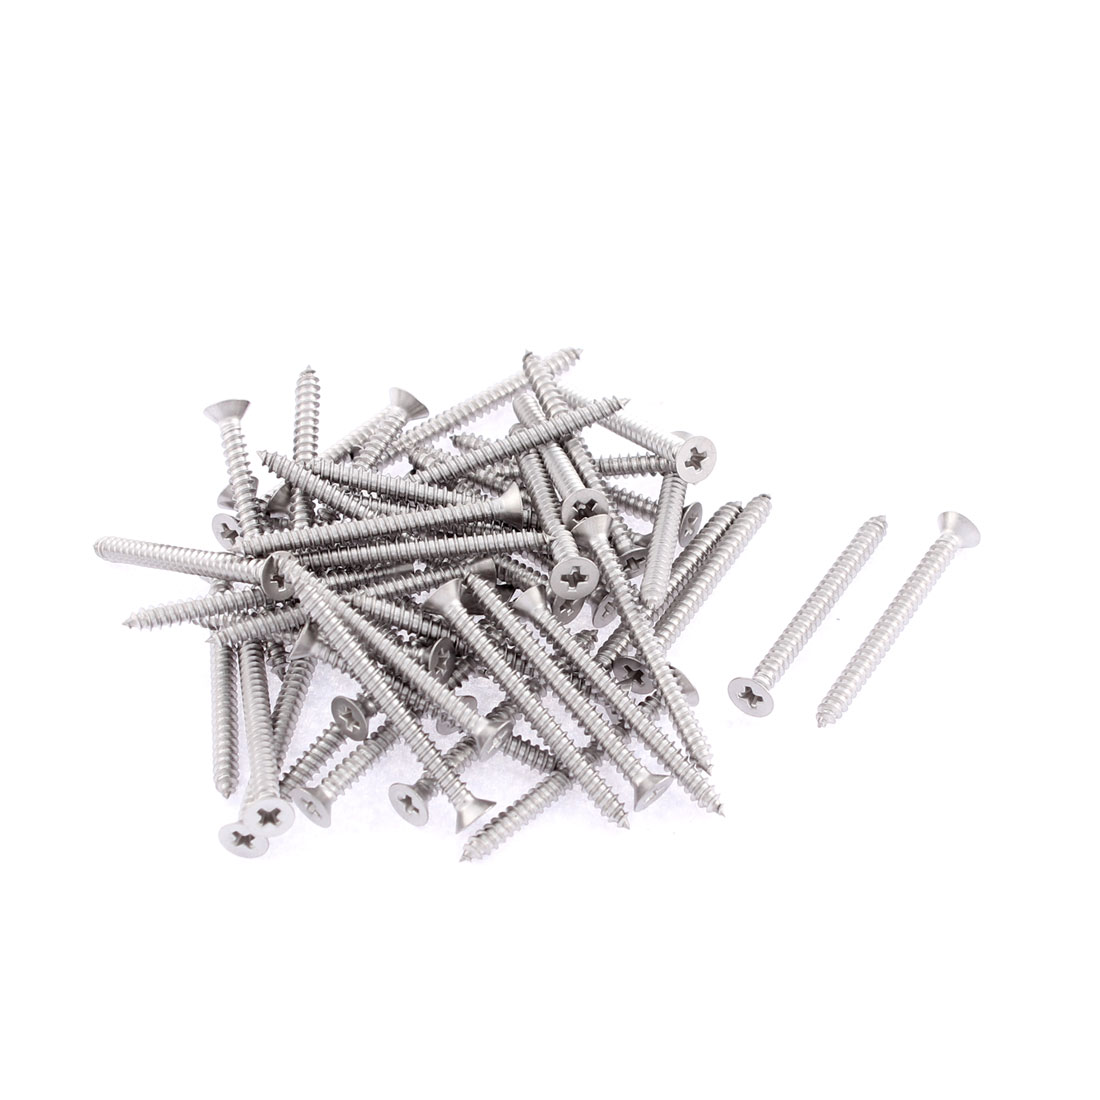 50 Pcs 2.9mmx32mm Stainless Steel Phillips Flat Head Sheet Self Tapping Screws